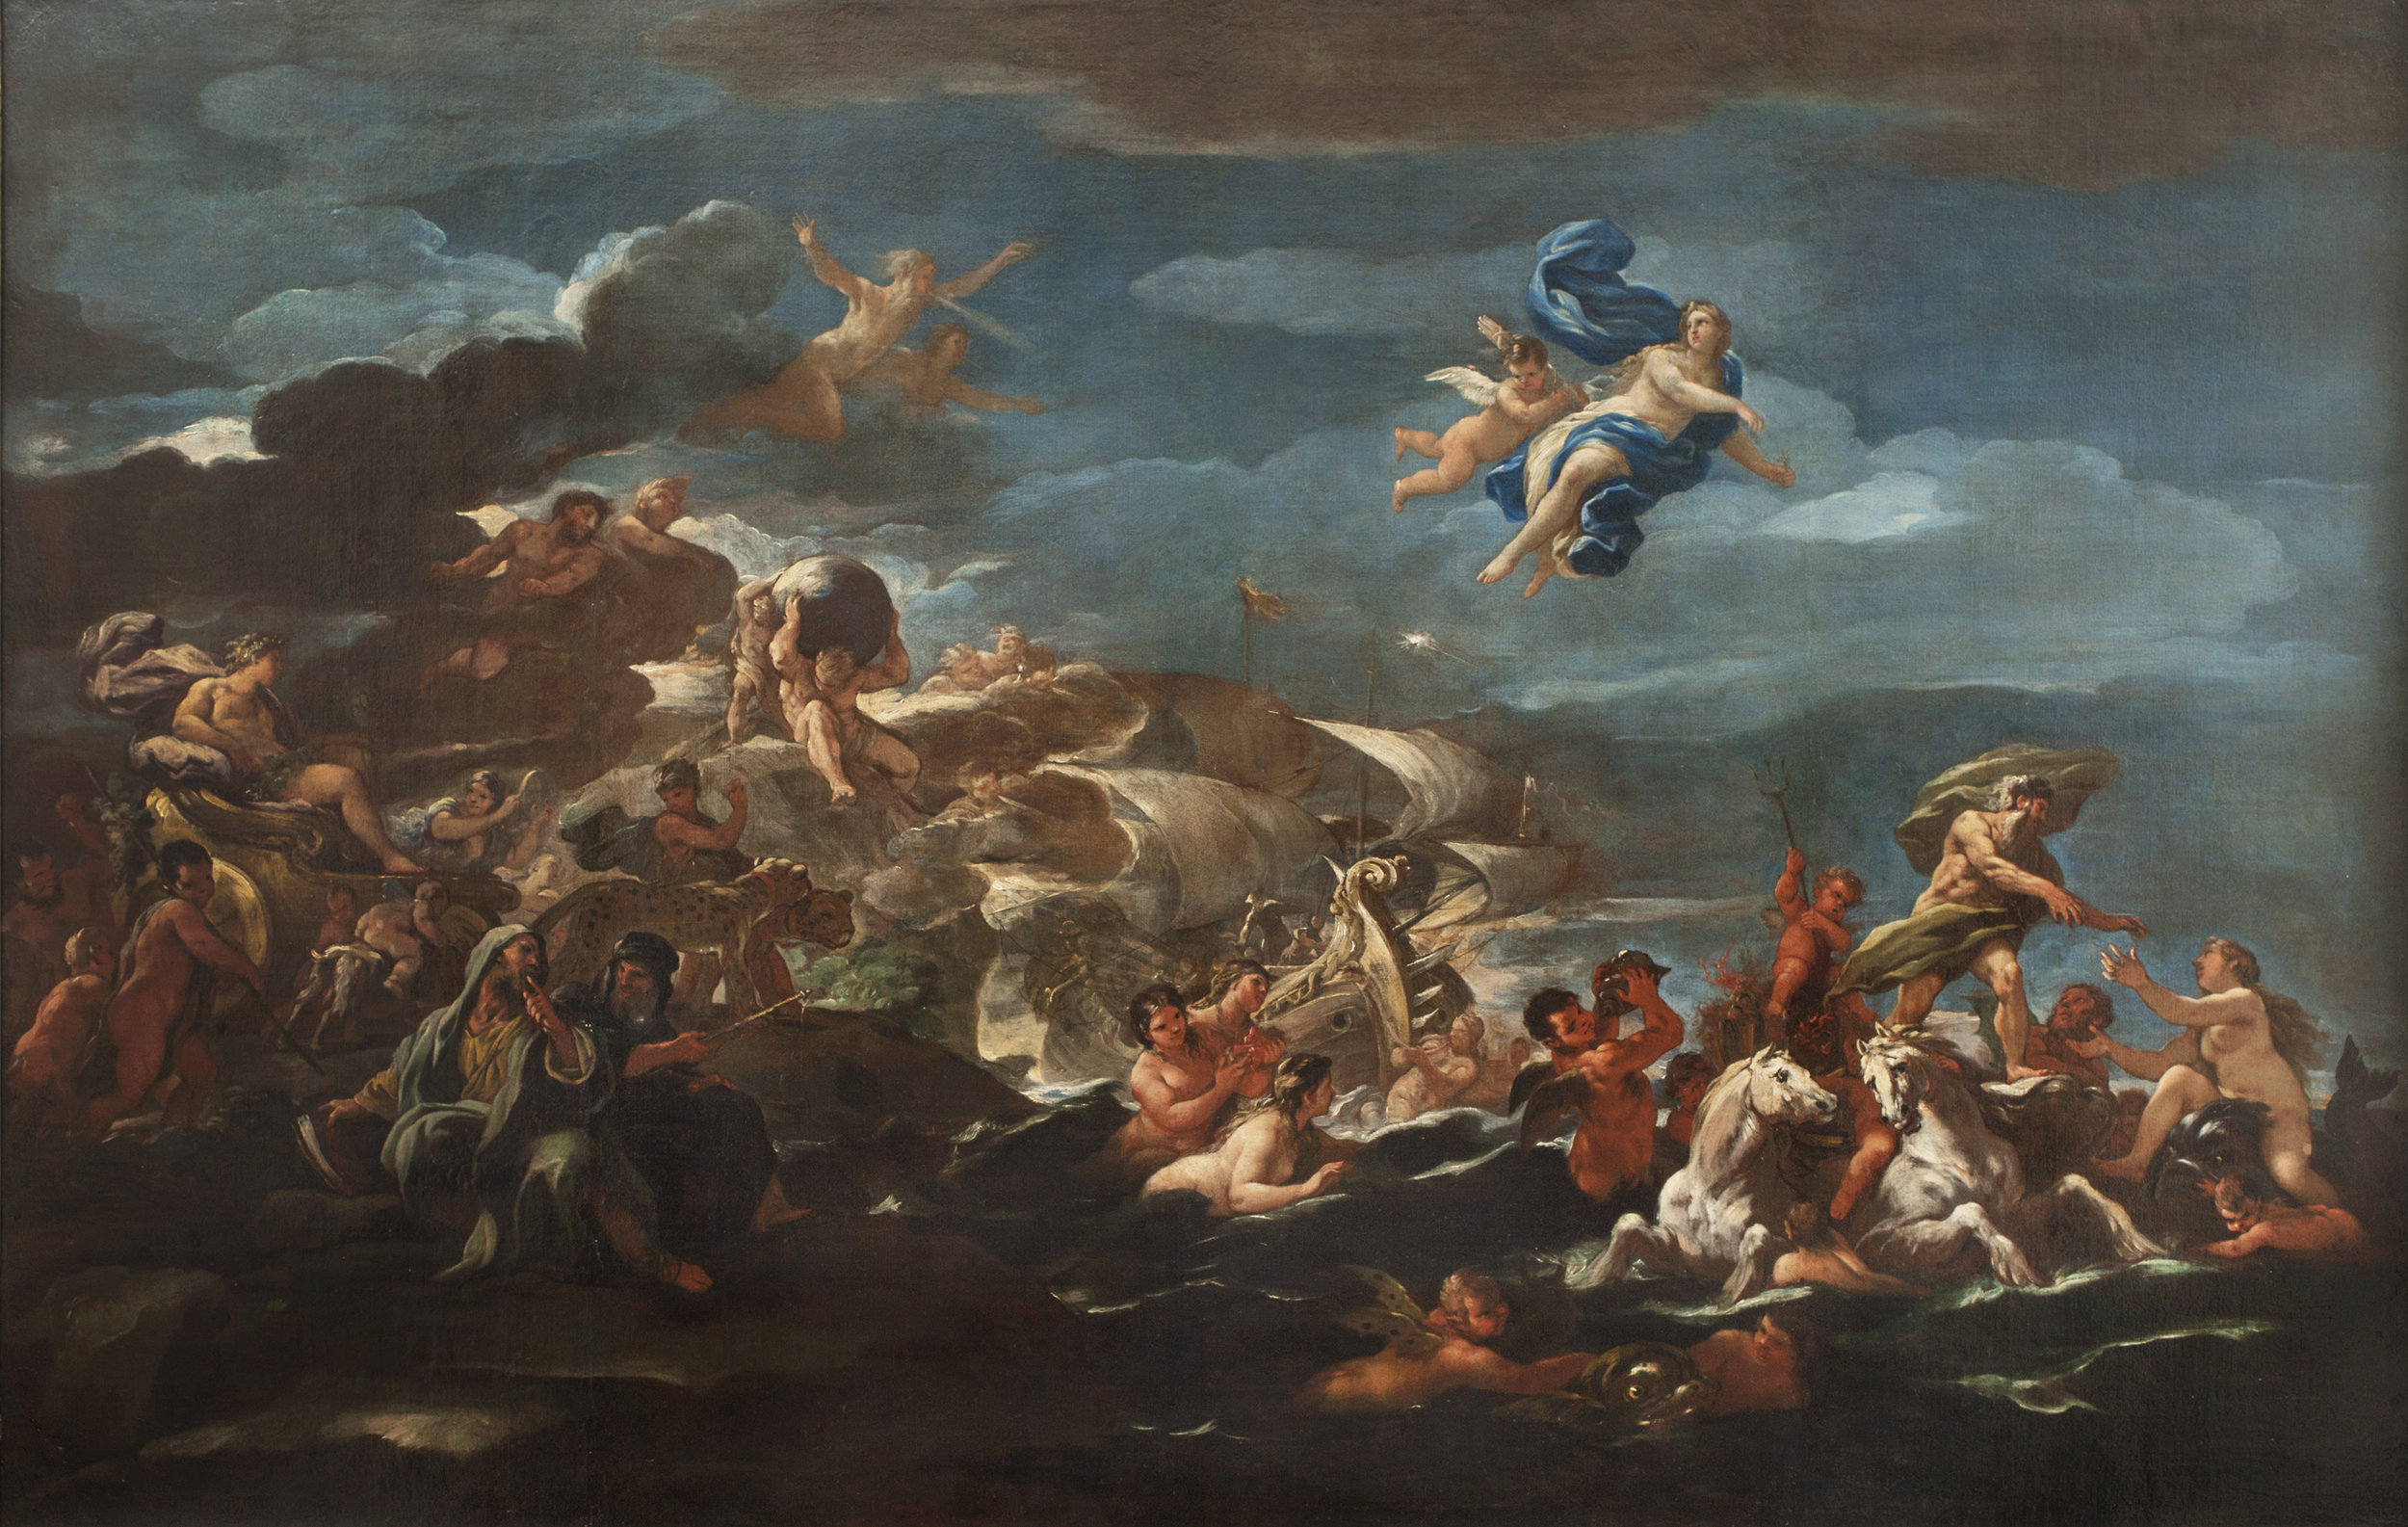 Luca Giordano  (b. 1634)  Allegory of Human Progress  (The Triumph of Bacchus and the Triumph of Neptune and Amphitrite) 47 ¾ x 74 ¾ in. oil on canvas